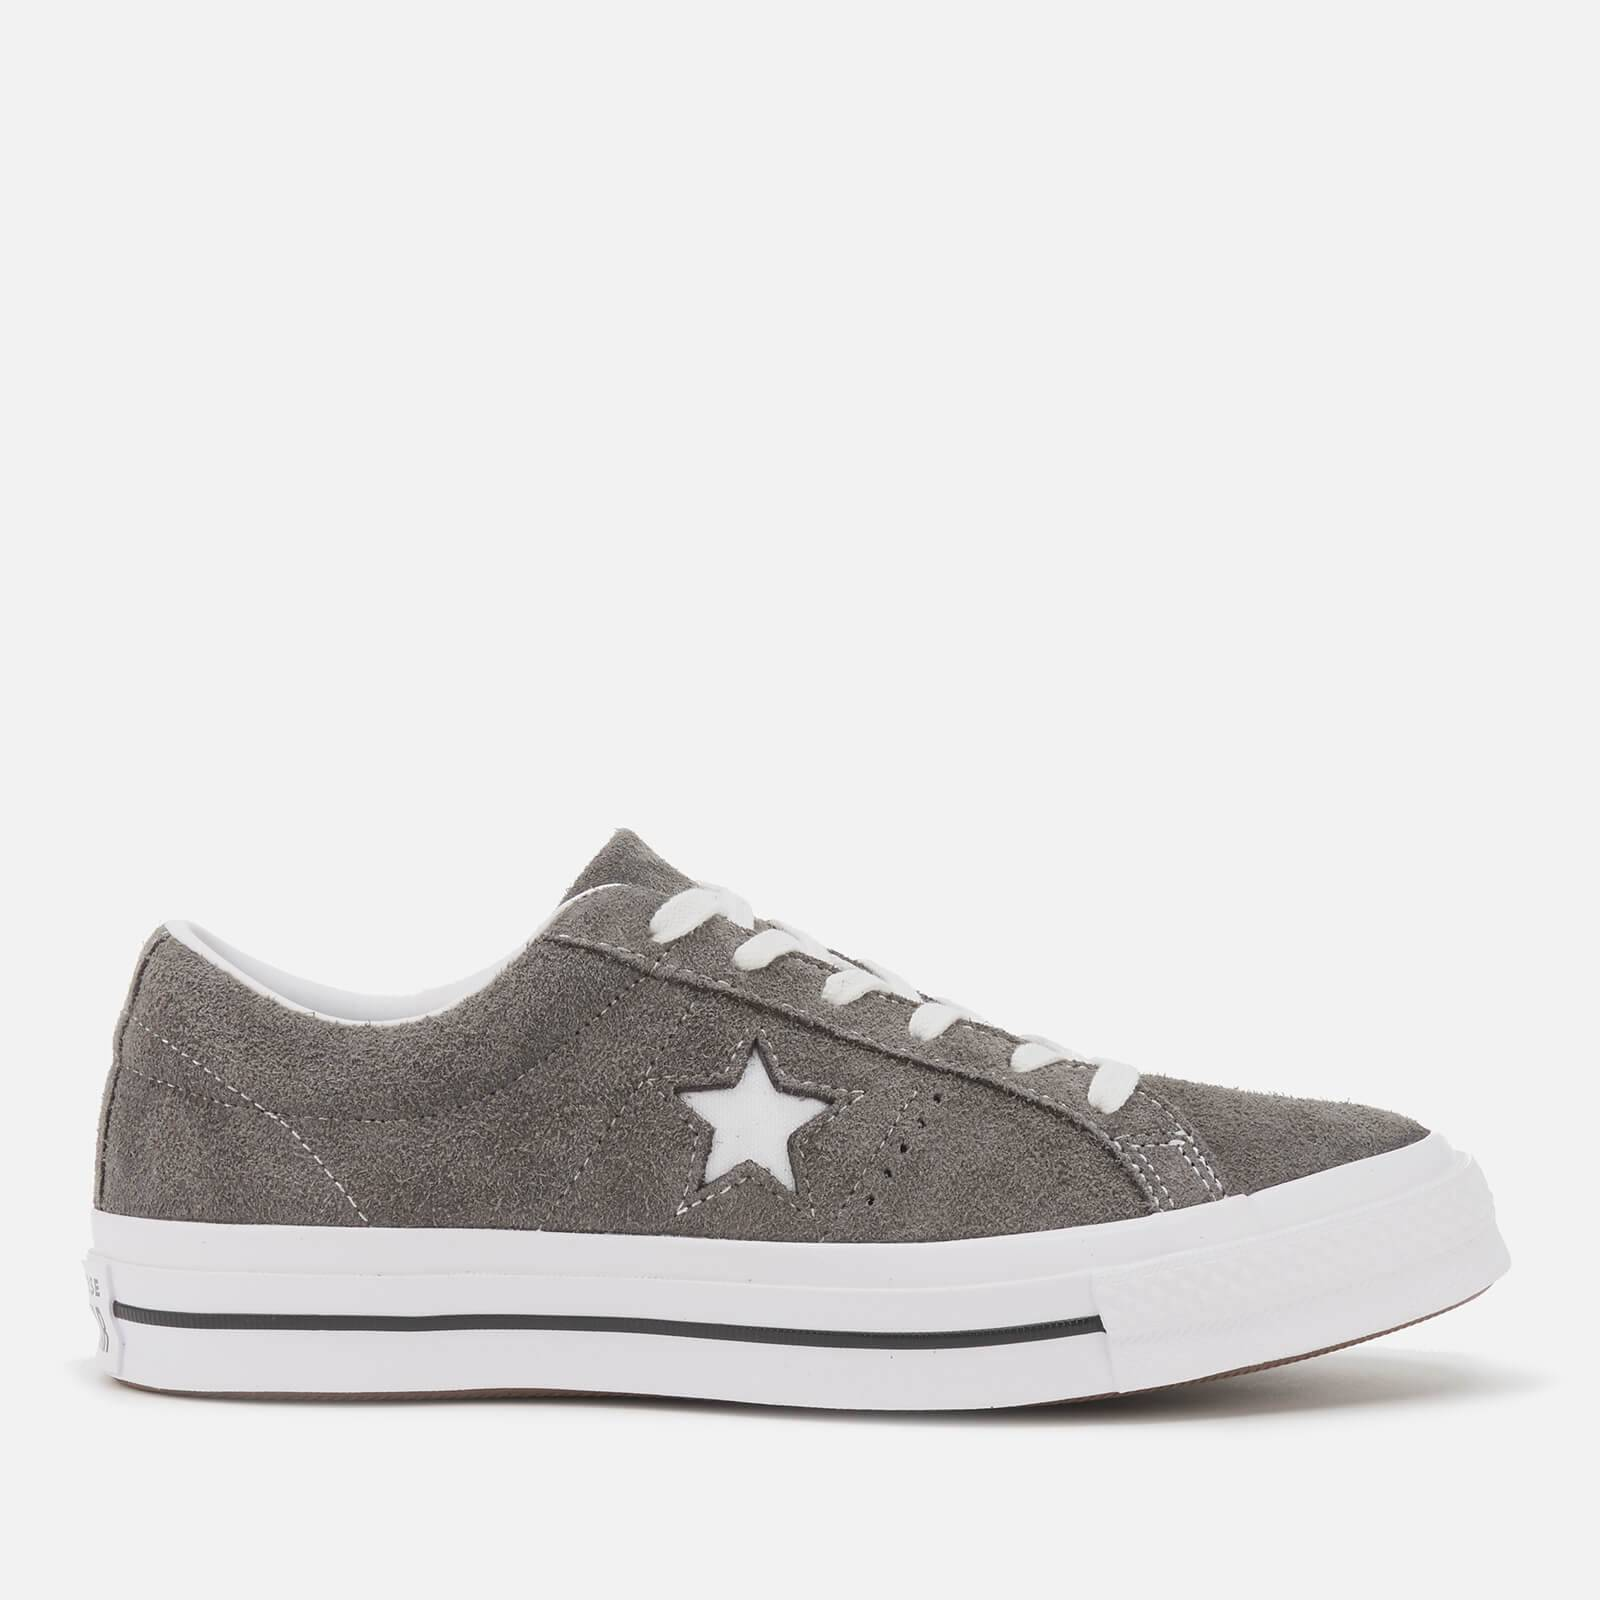 Converse Men's One Star Vintage Suede Ox Trainers - Carbon Grey/White/Black - UK 9 - Grey